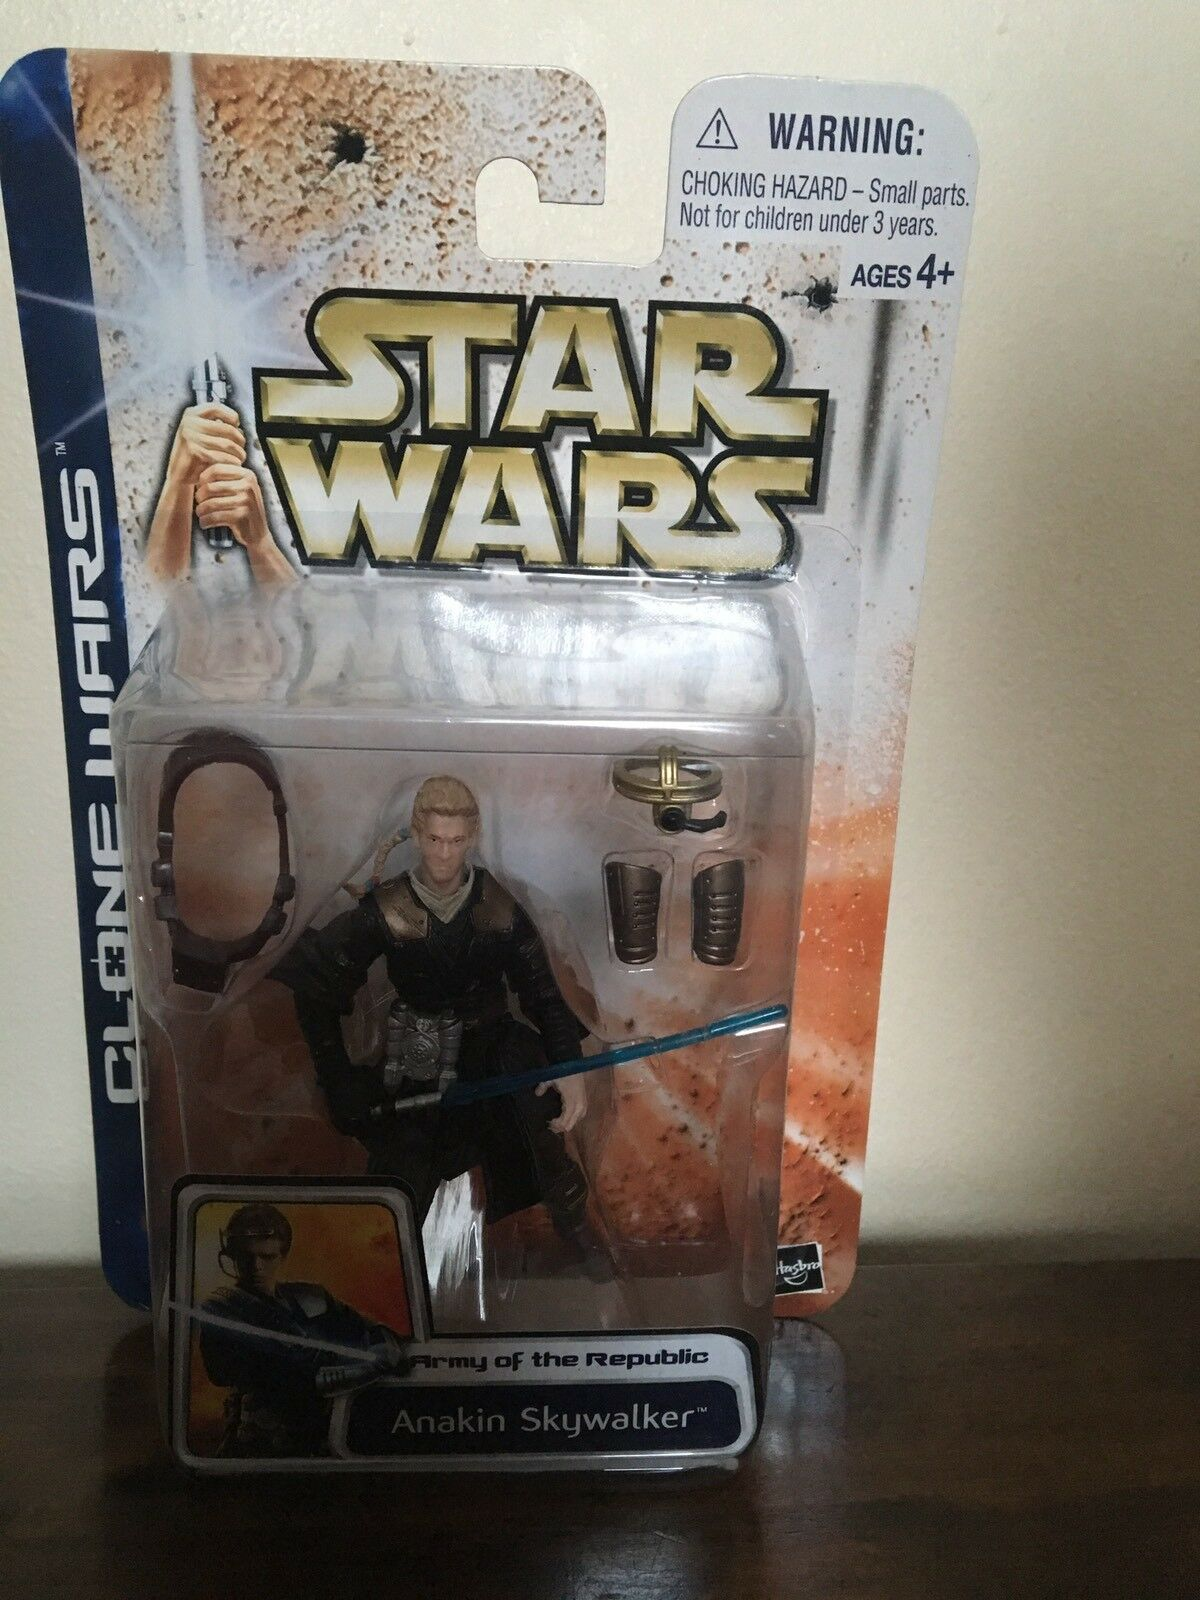 Pool Filtersand Obi Wars Clone Wars Anakin Skywalker Army Of The Republic Carded